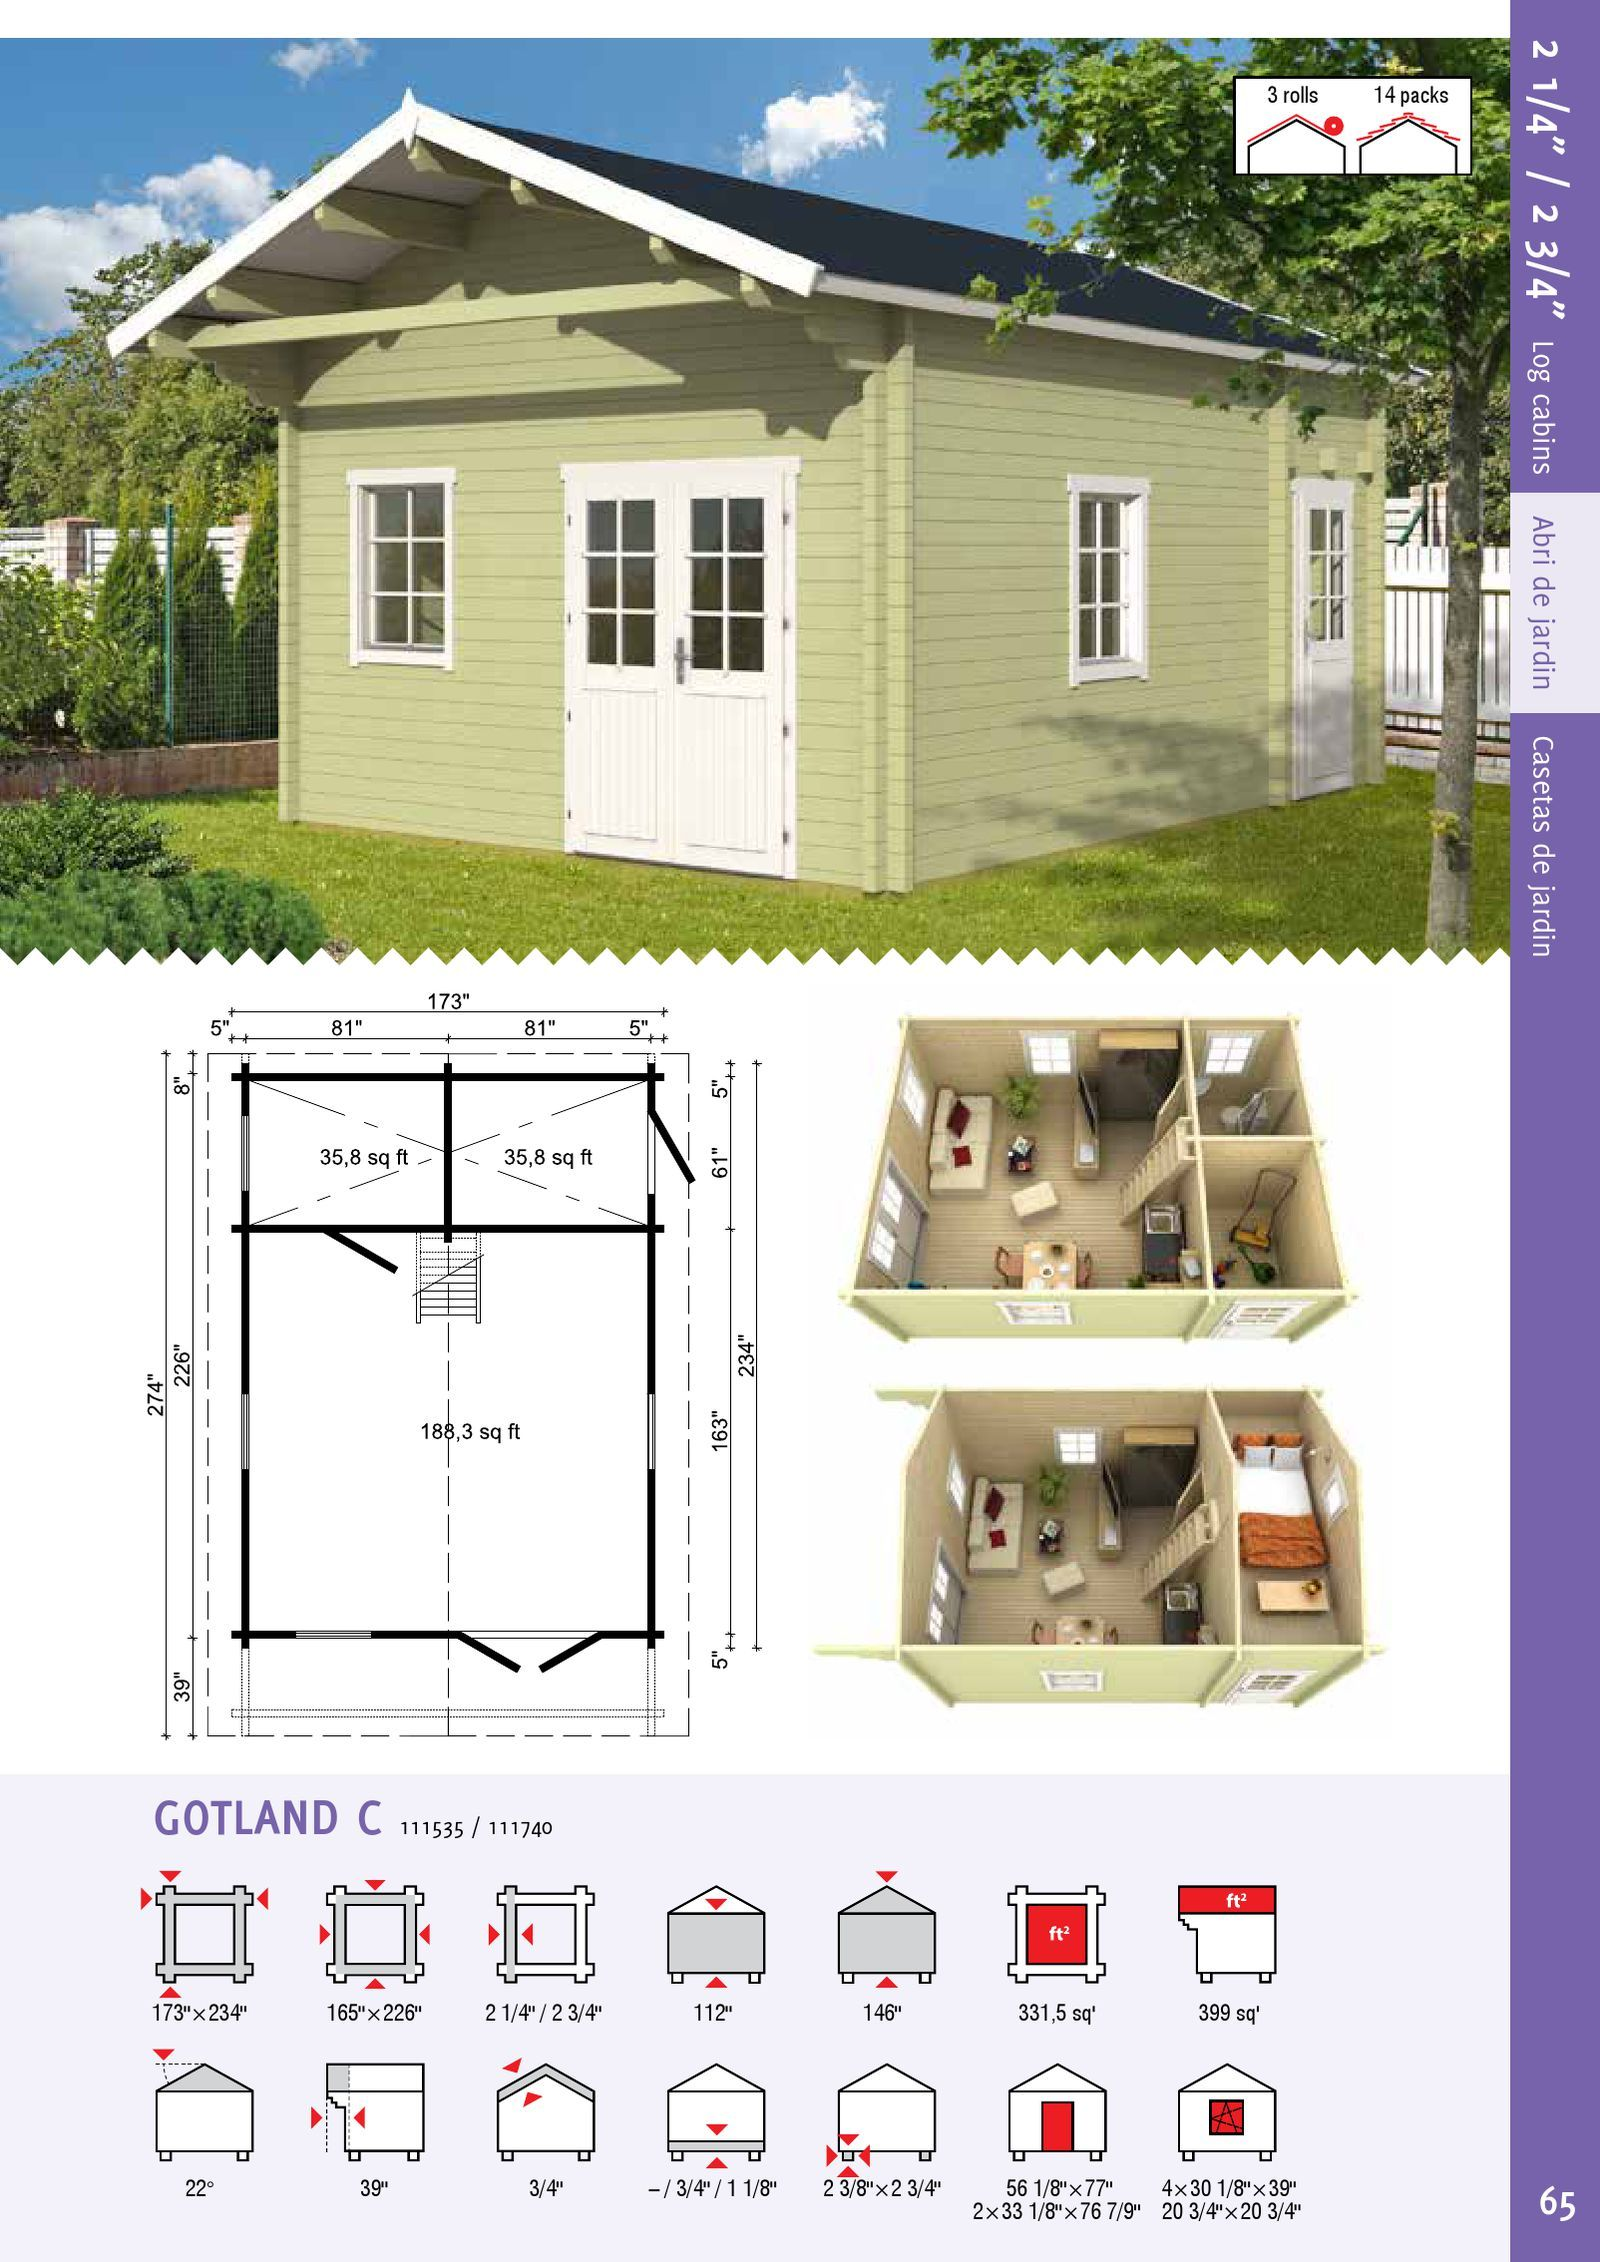 2014/2015 Product Catalog Affordable Portable Structures